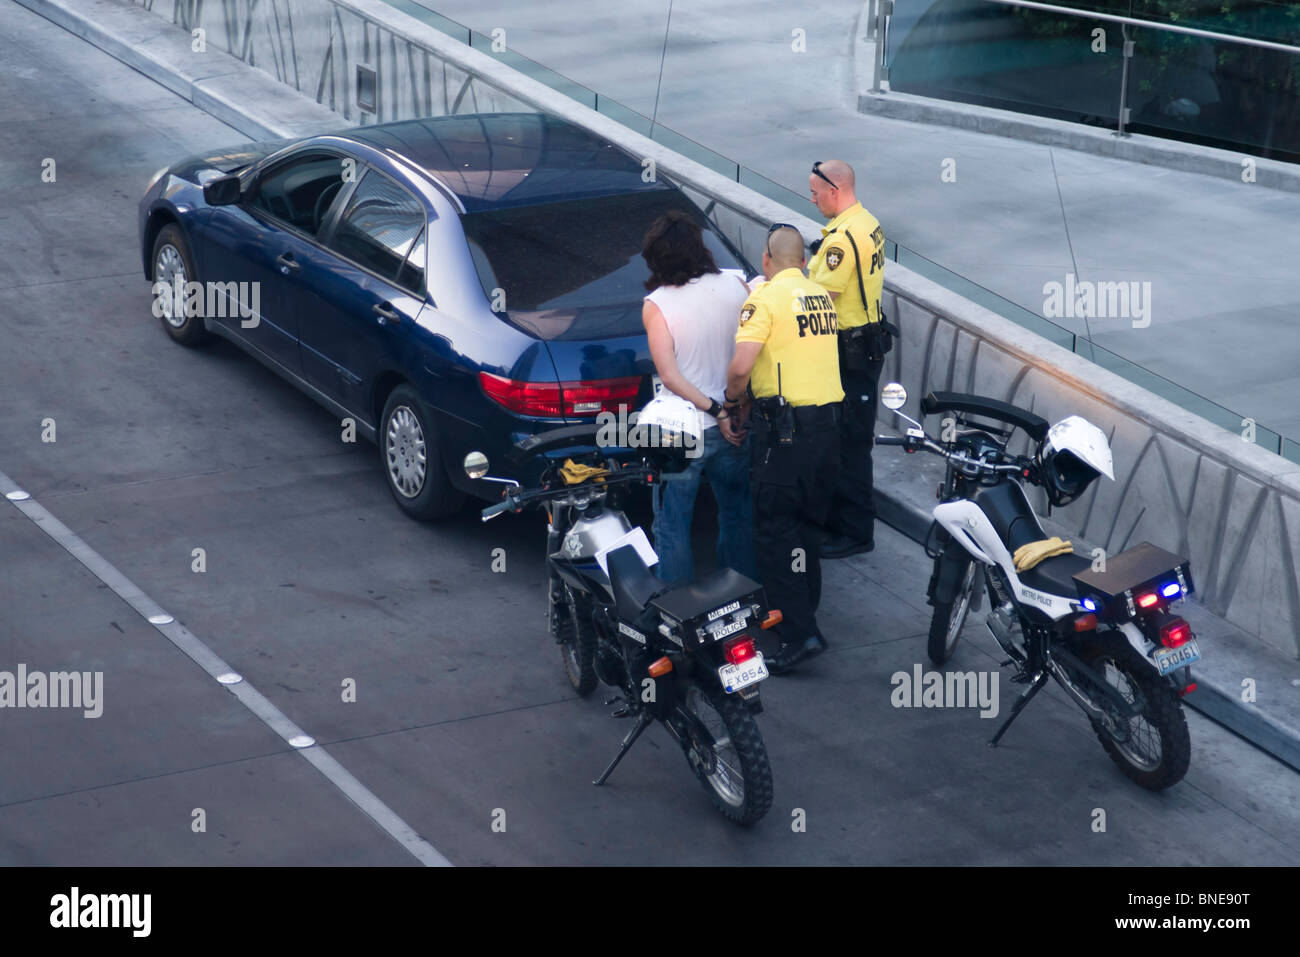 Las Vegas police make a stop and search vehicle street arrest - Stock Image